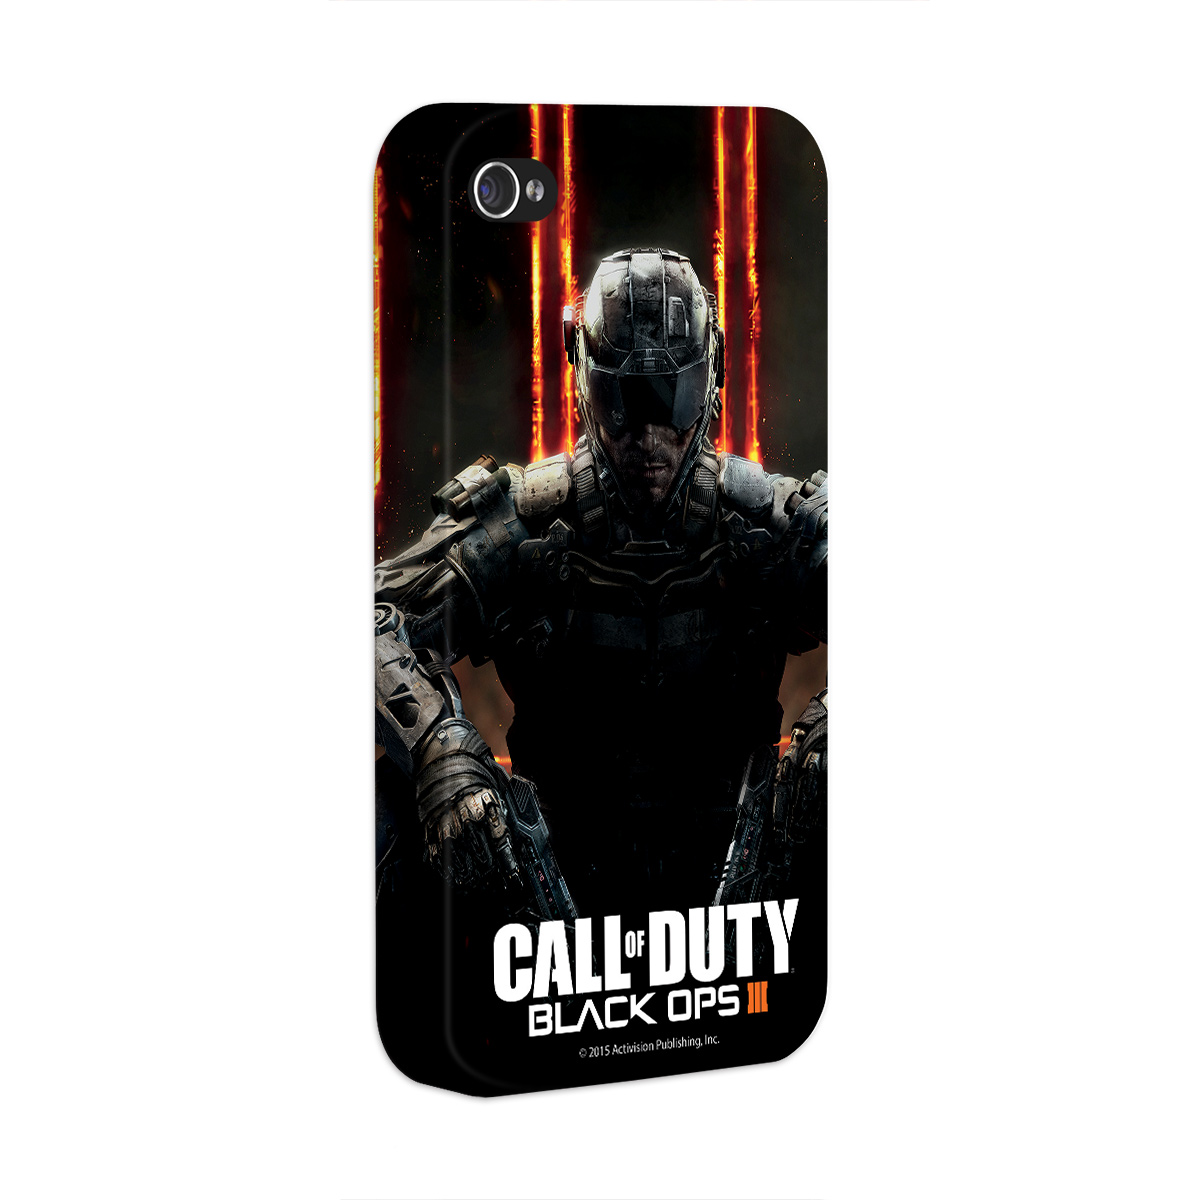 Capa para iPhone 4/4S Call of Duty Soldier 2015